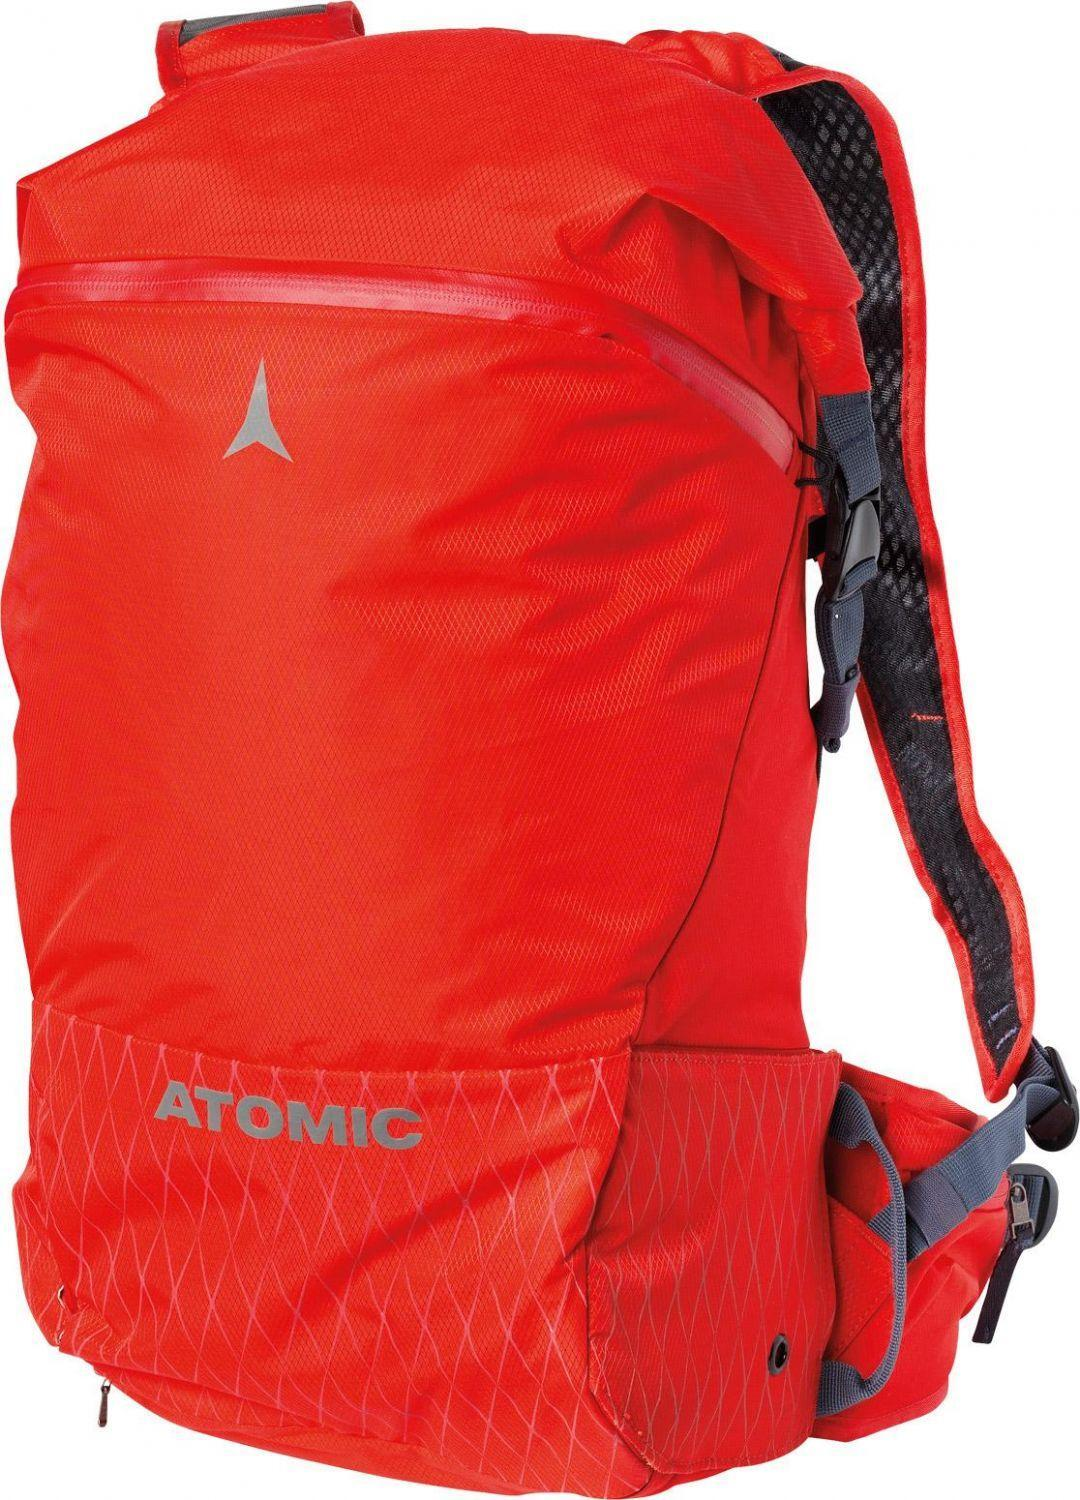 atomic-backland-ul-22-tourenrucksack-farbe-bright-red-